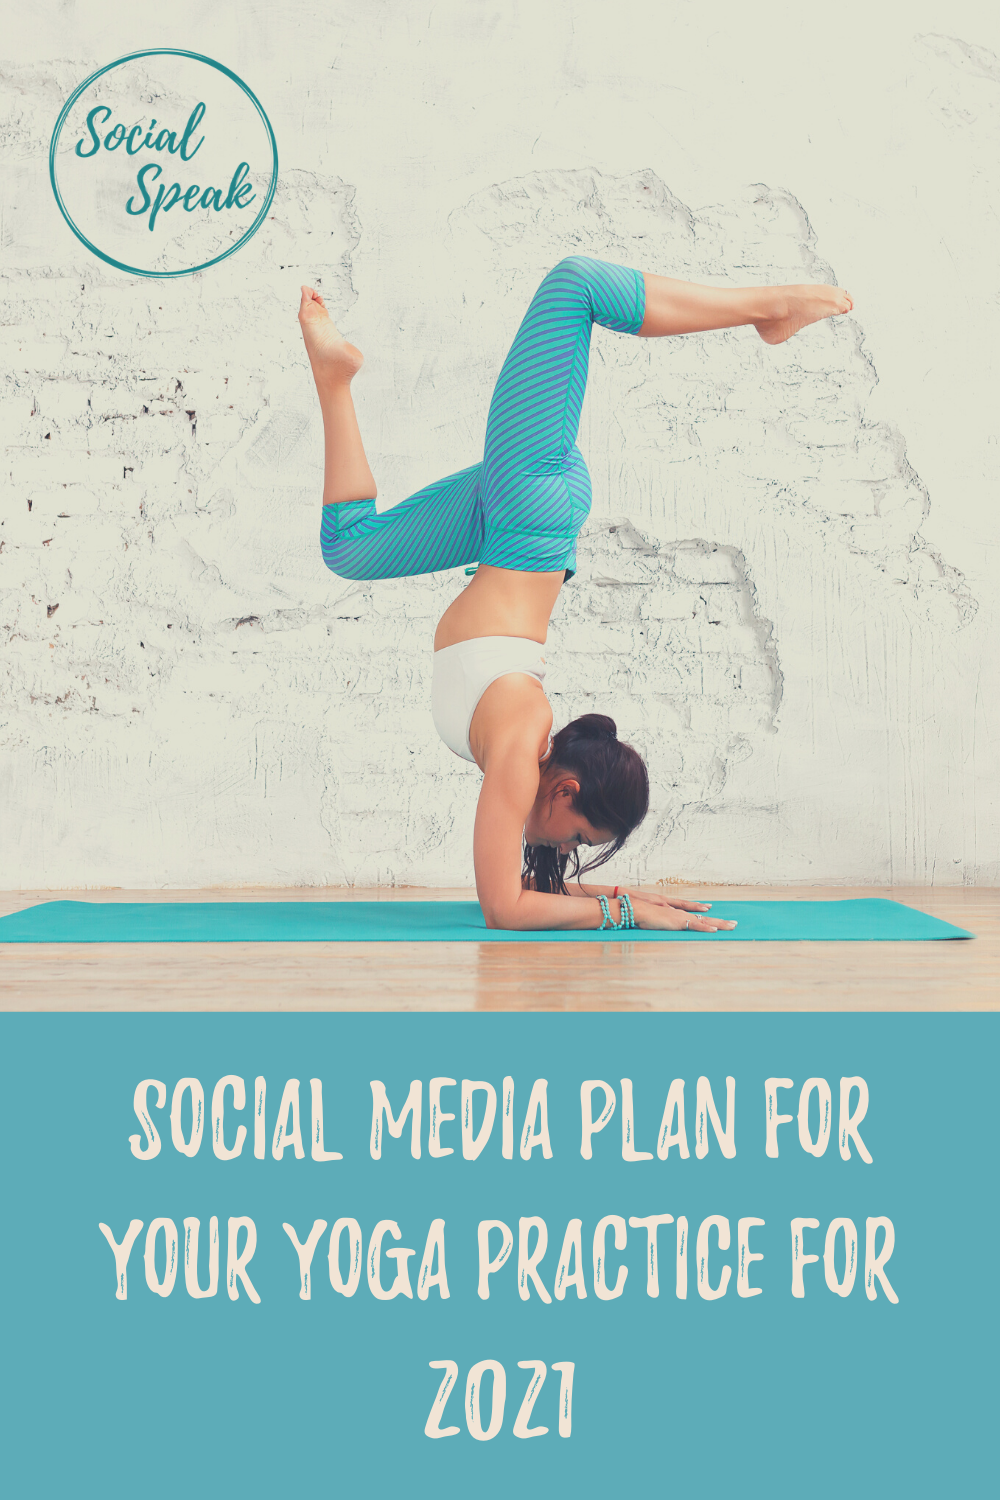 Social Media Plan for Your Yoga Practice for 2021